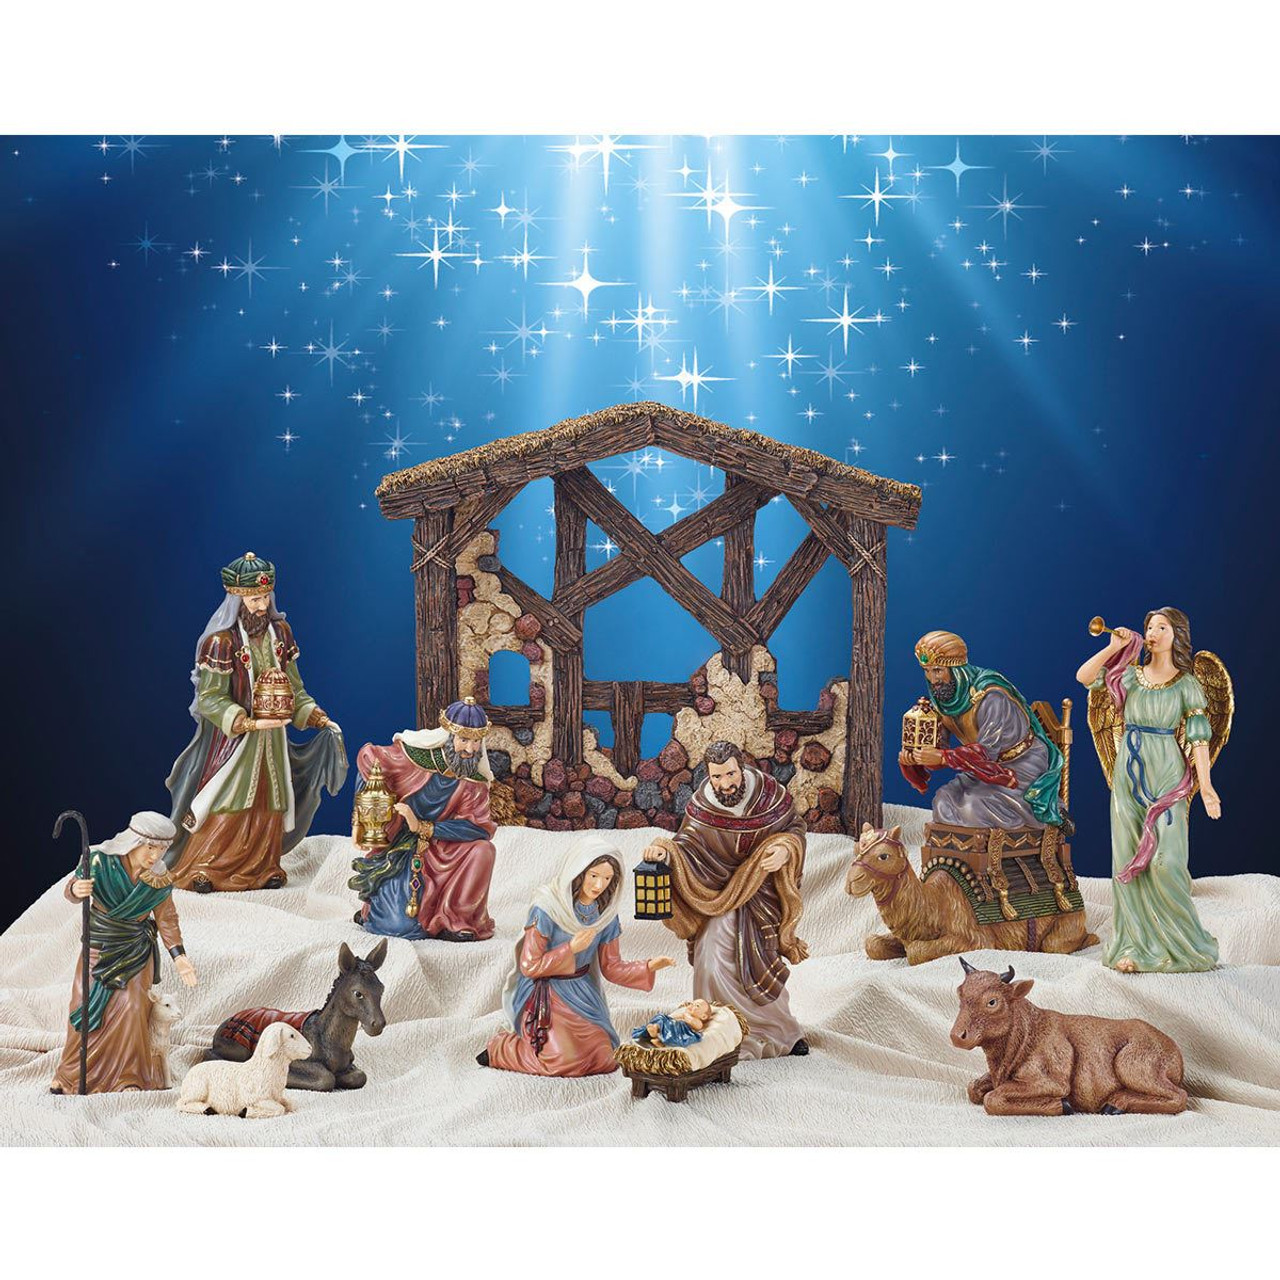 Christmas Nativity.Hand Painted 13 Piece Tabletop Christmas Nativity Set Story Model Display Figures